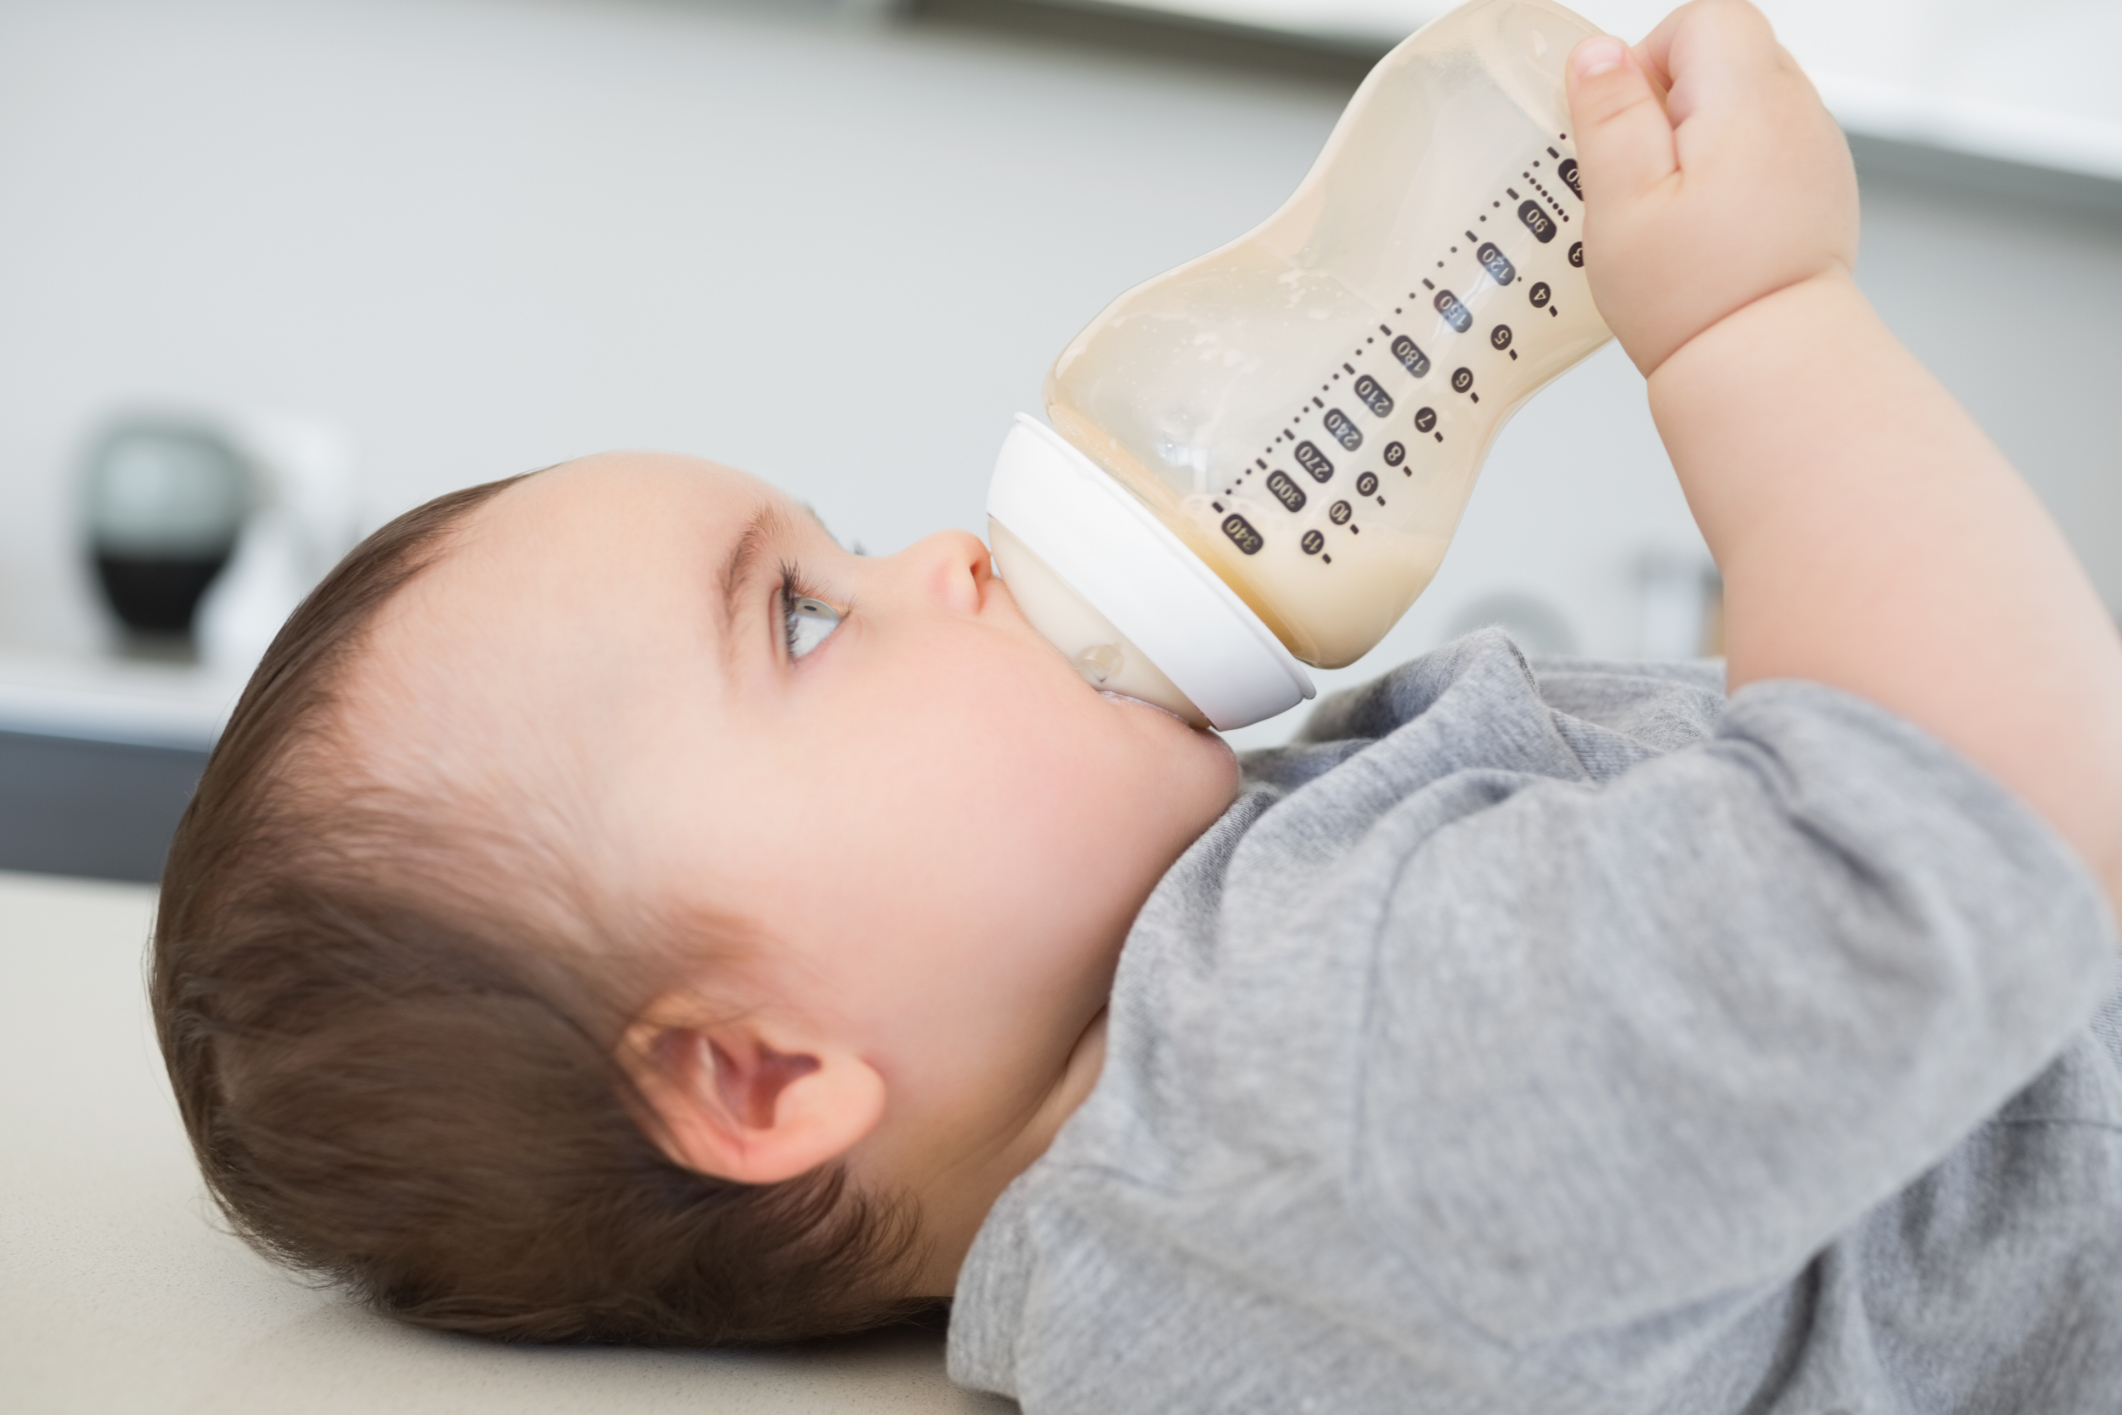 Making Baby Formula With Room Temperature Water